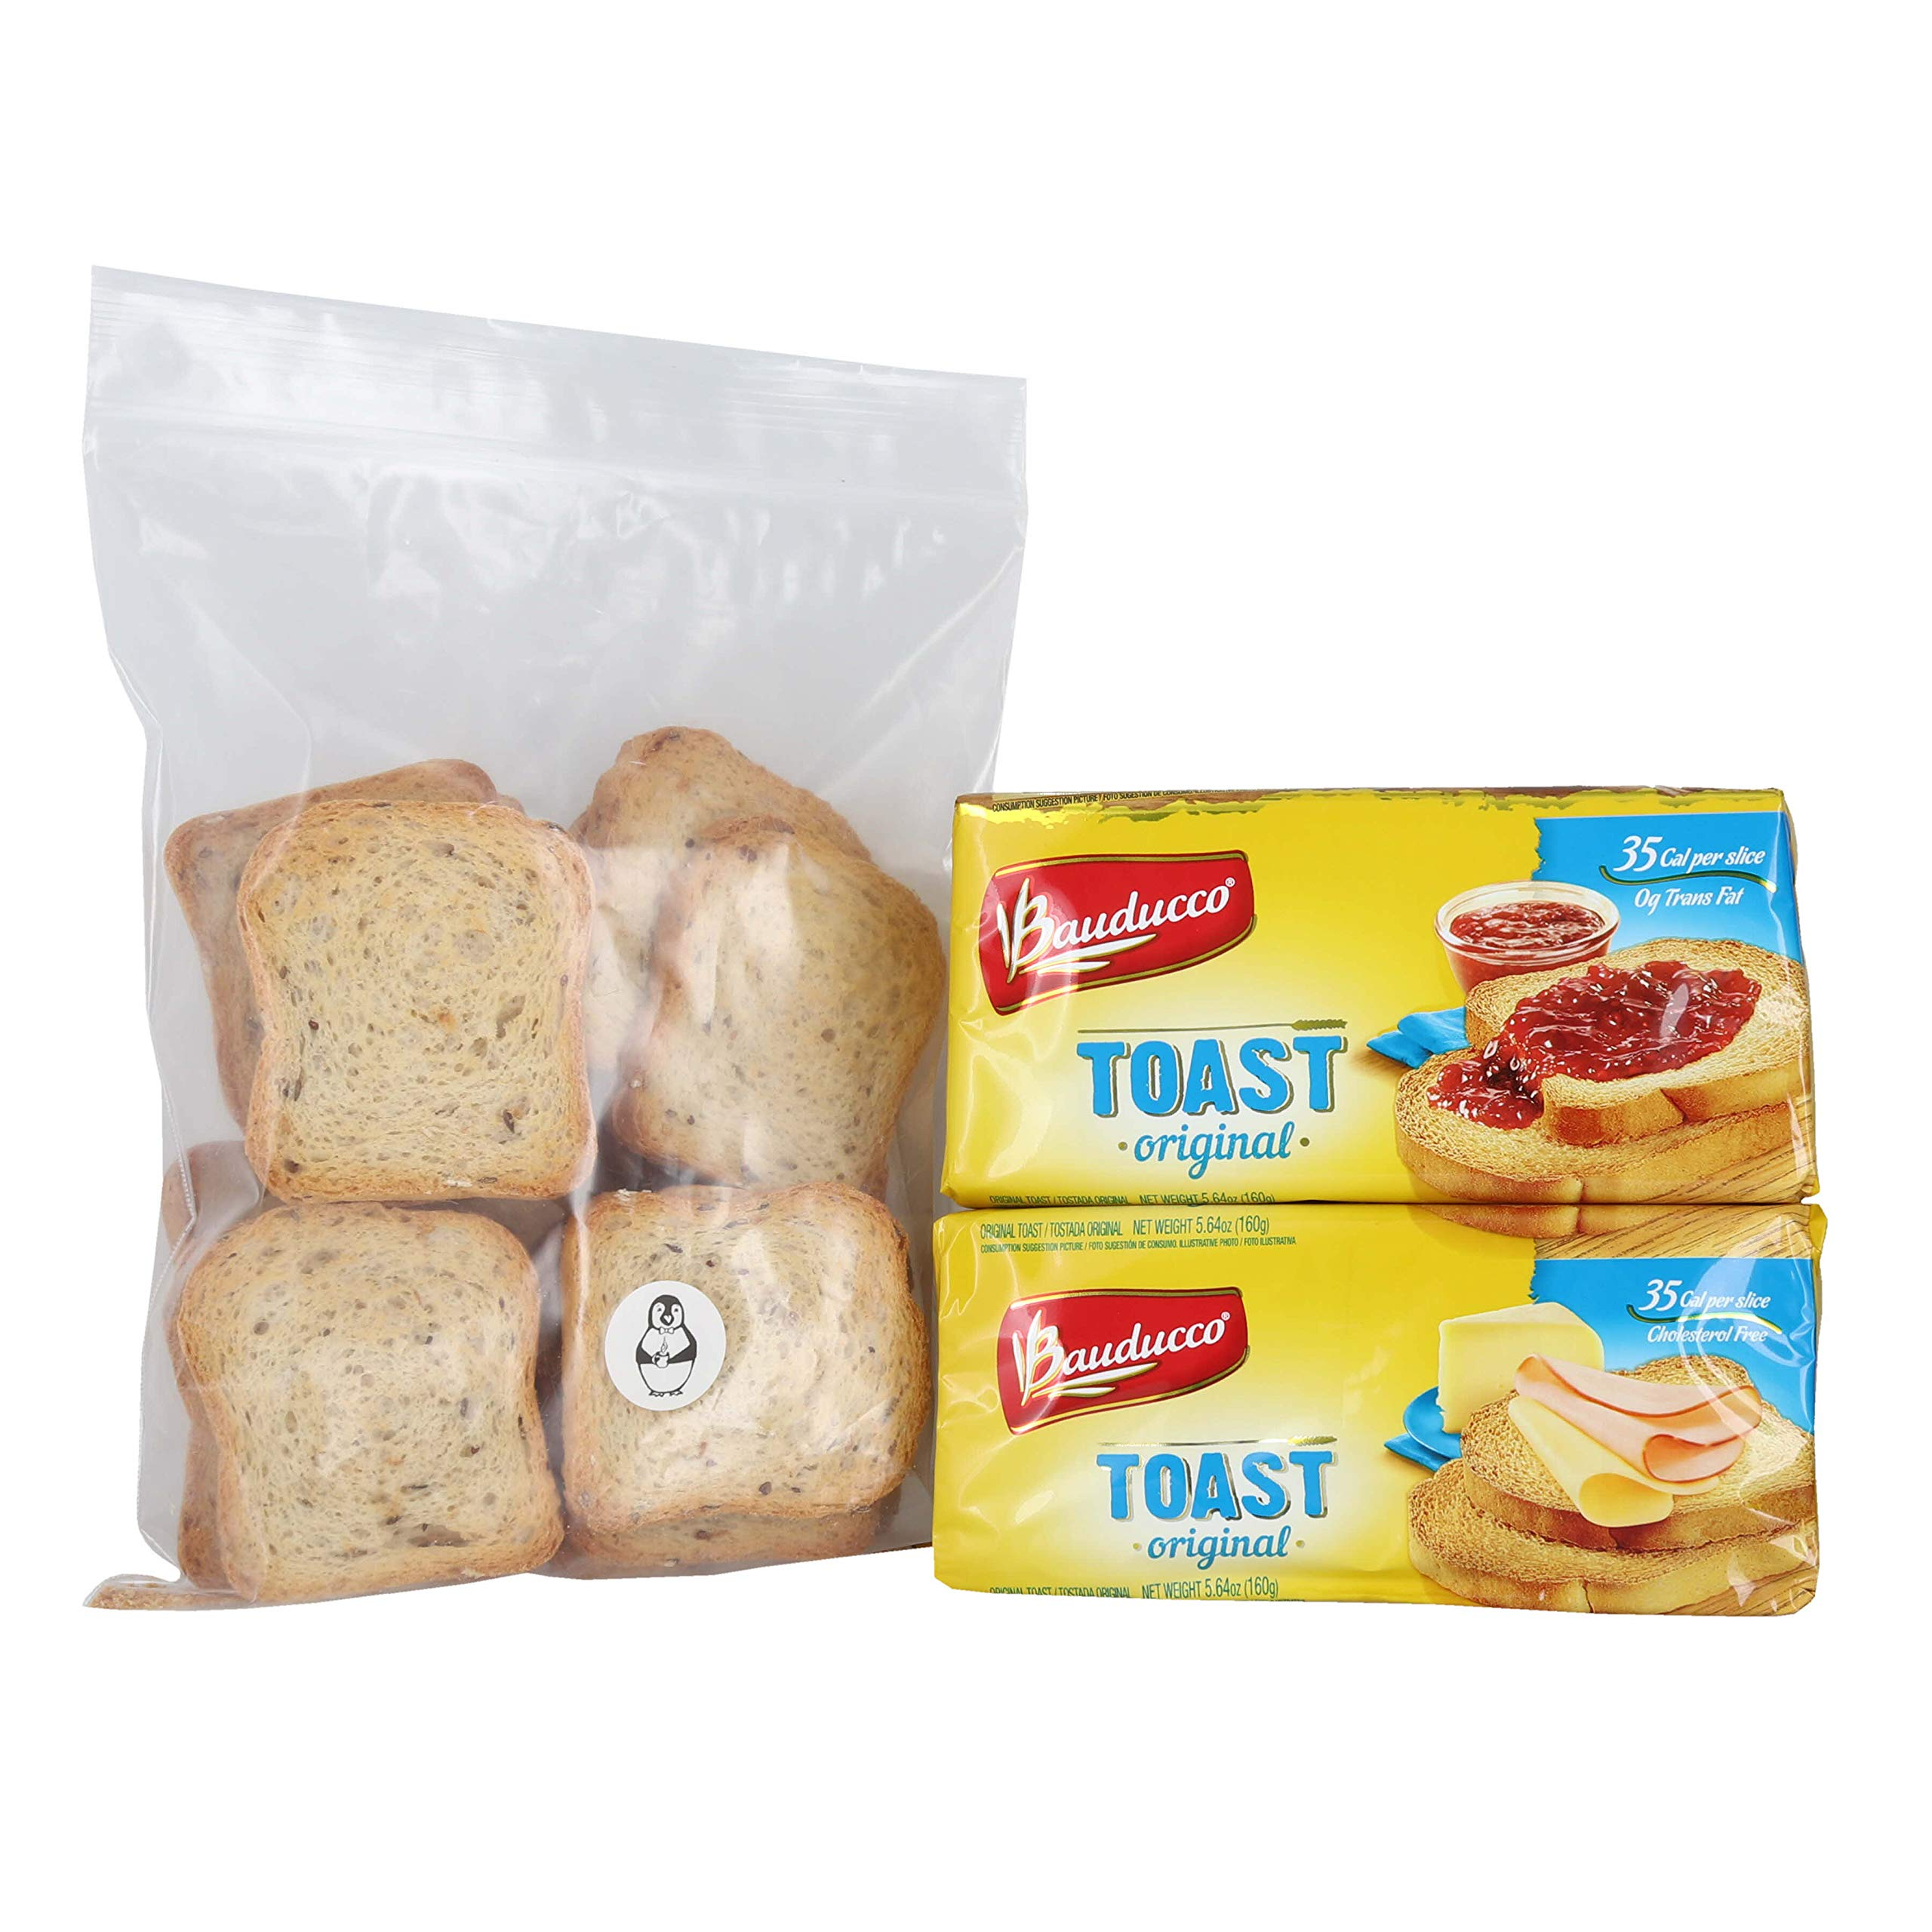 Bauducco Original Toast - (2 Pack) W/ Premium Penguin Quick Storage Pouch by Bauducco